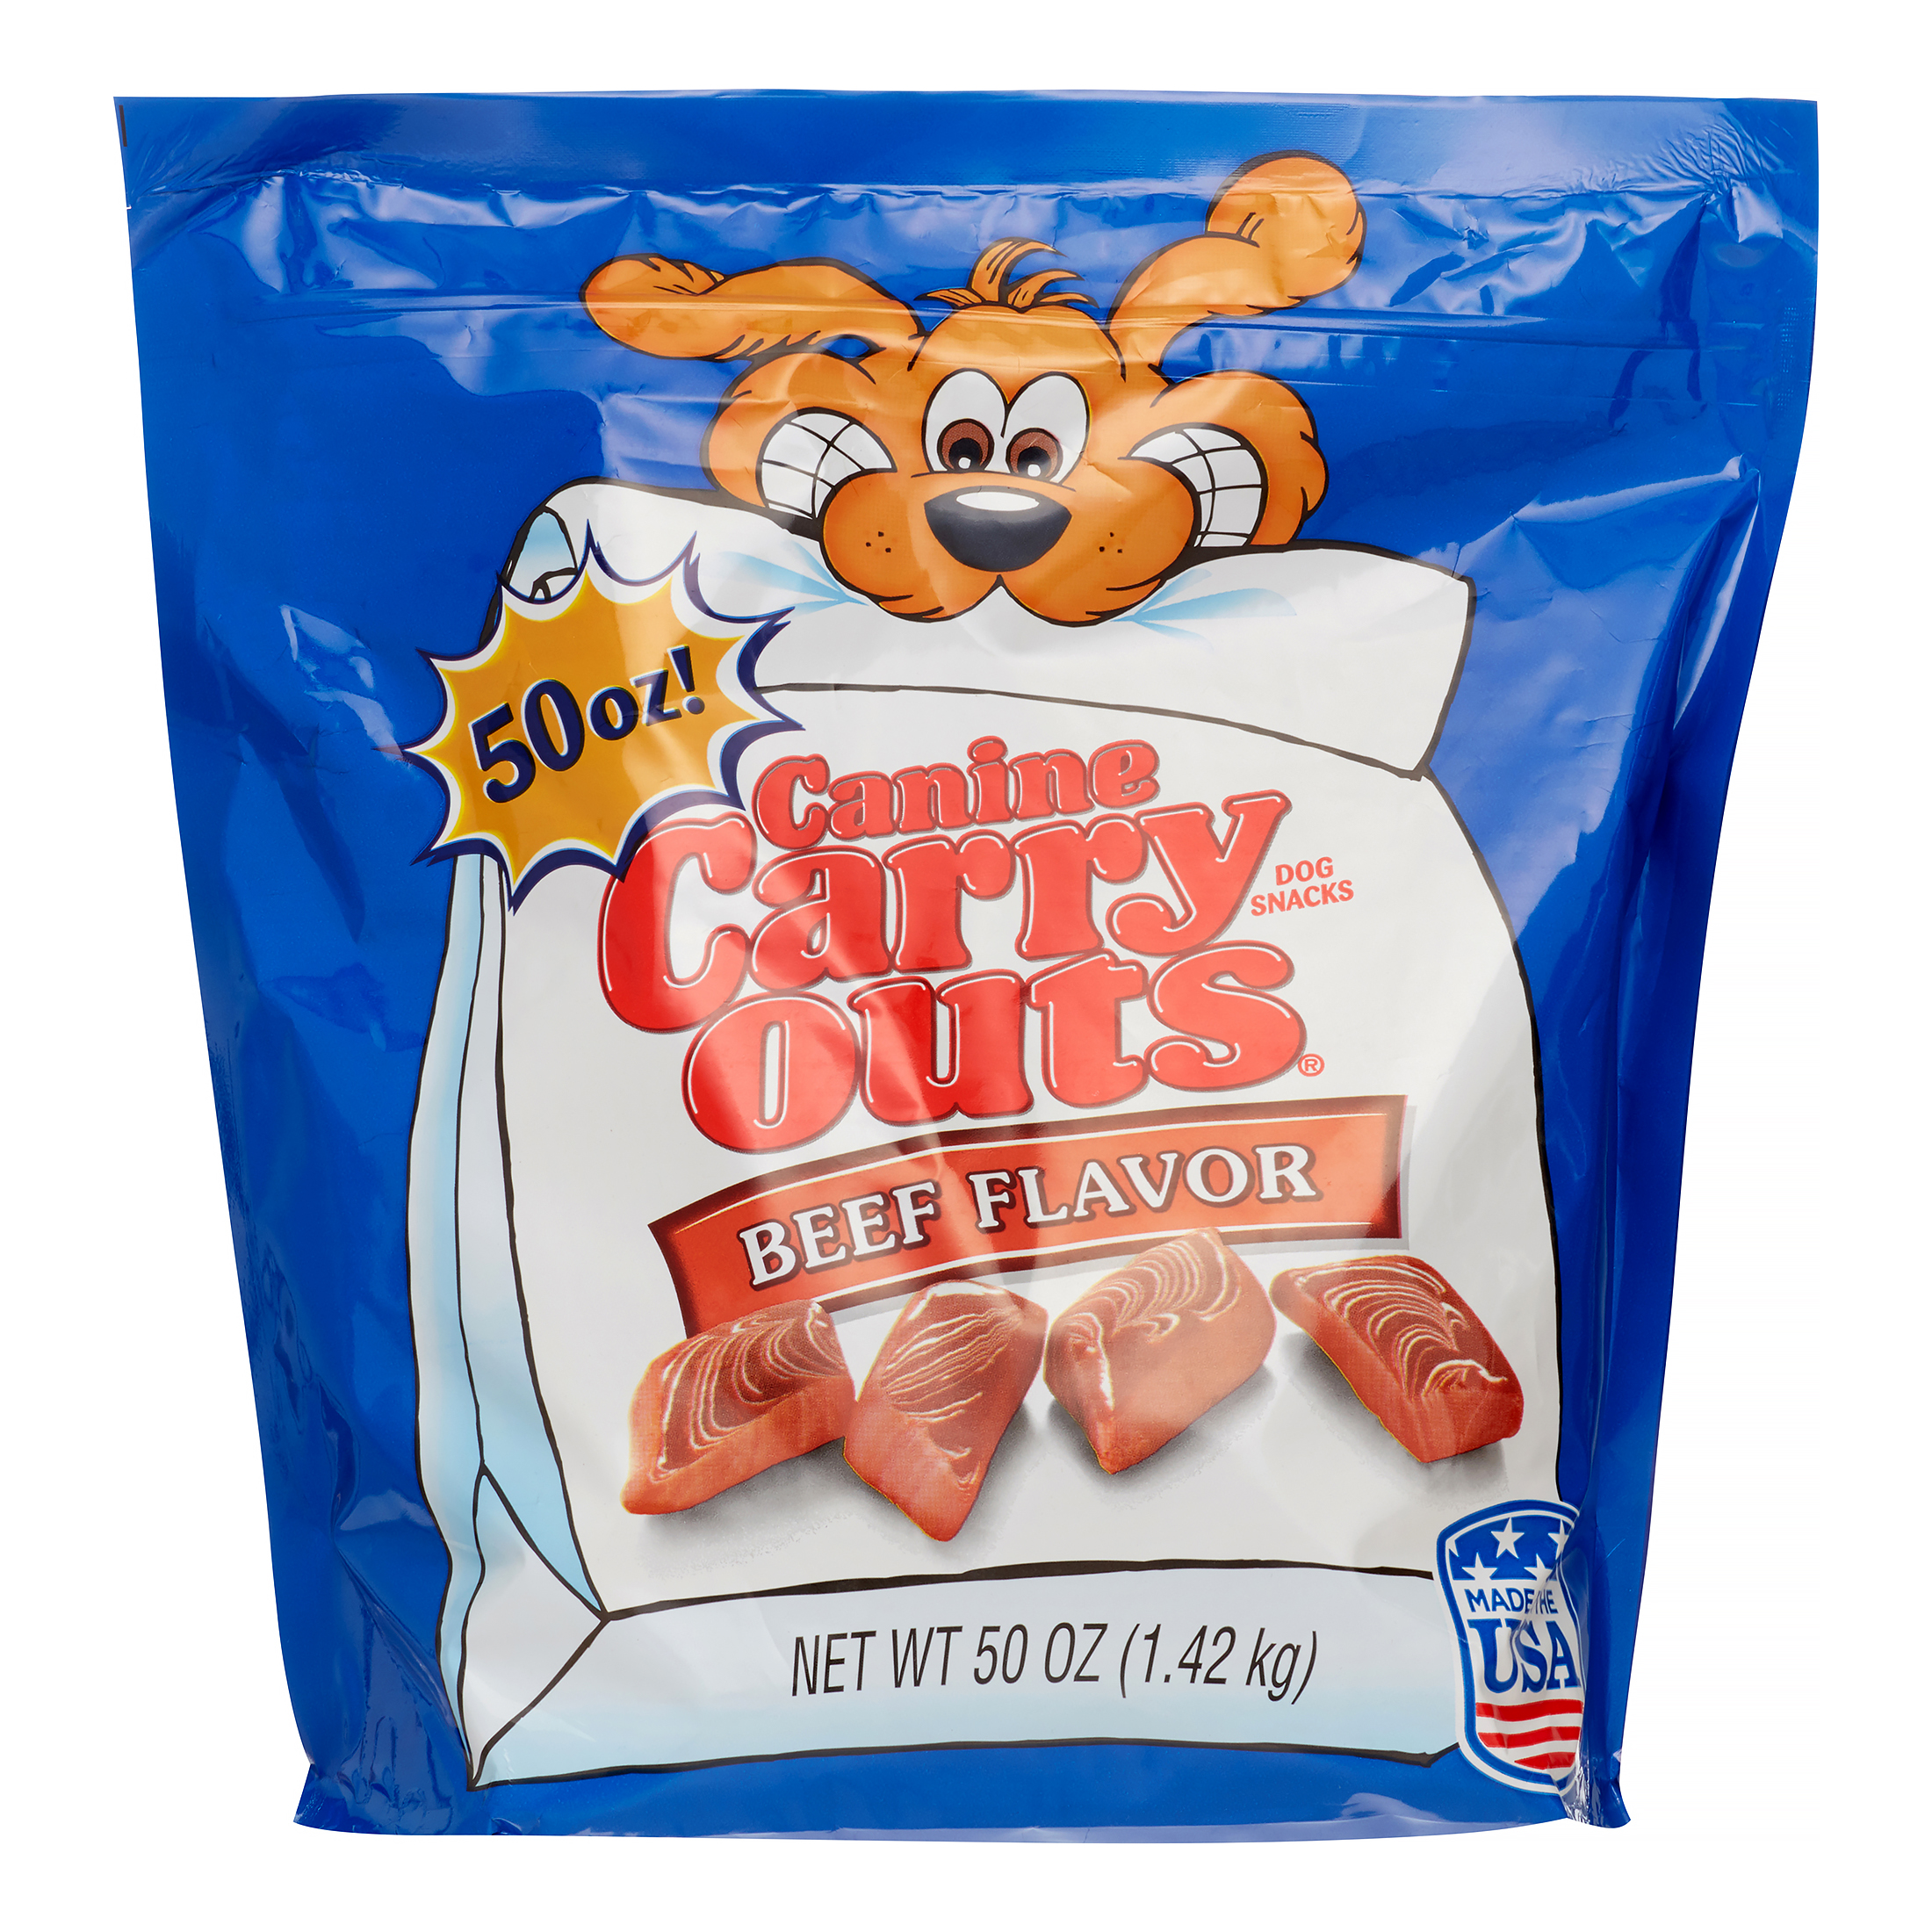 Canine Carry Outs Beef Flavor Dog Snacks, 50 Oz